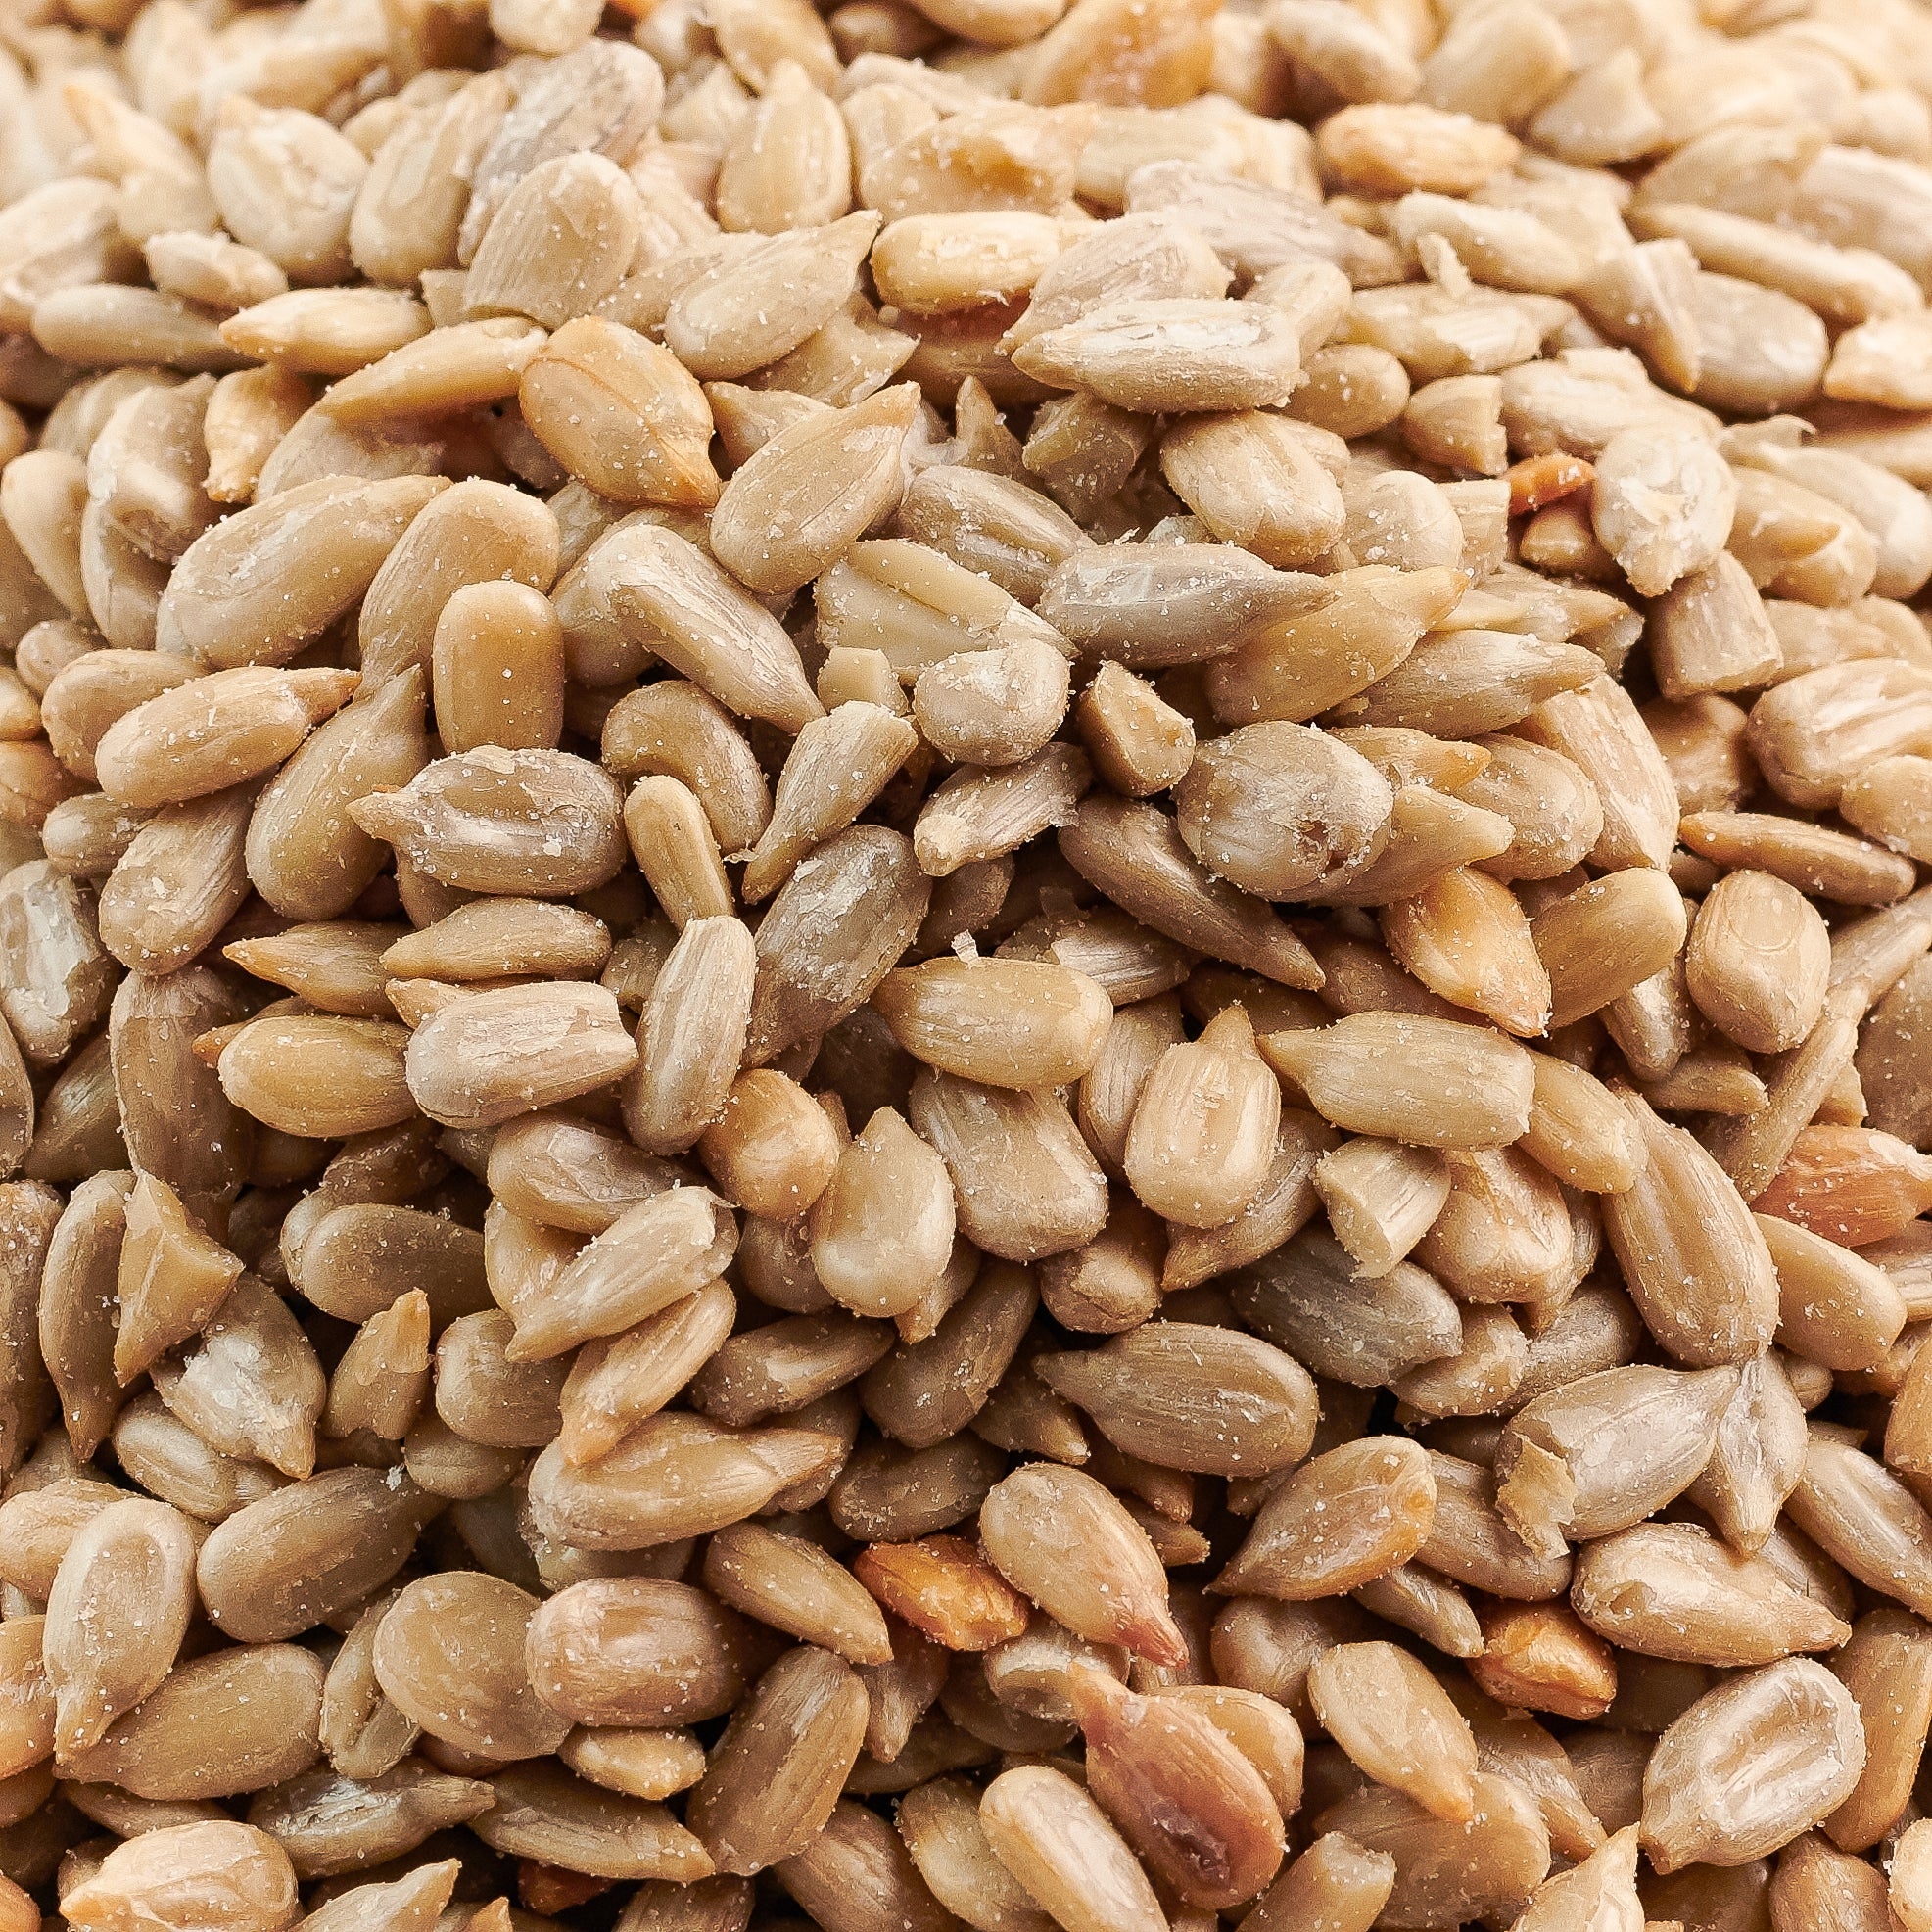 Roasted/Salted Sunflower Seed Meats - 25 Pound Bulk Case